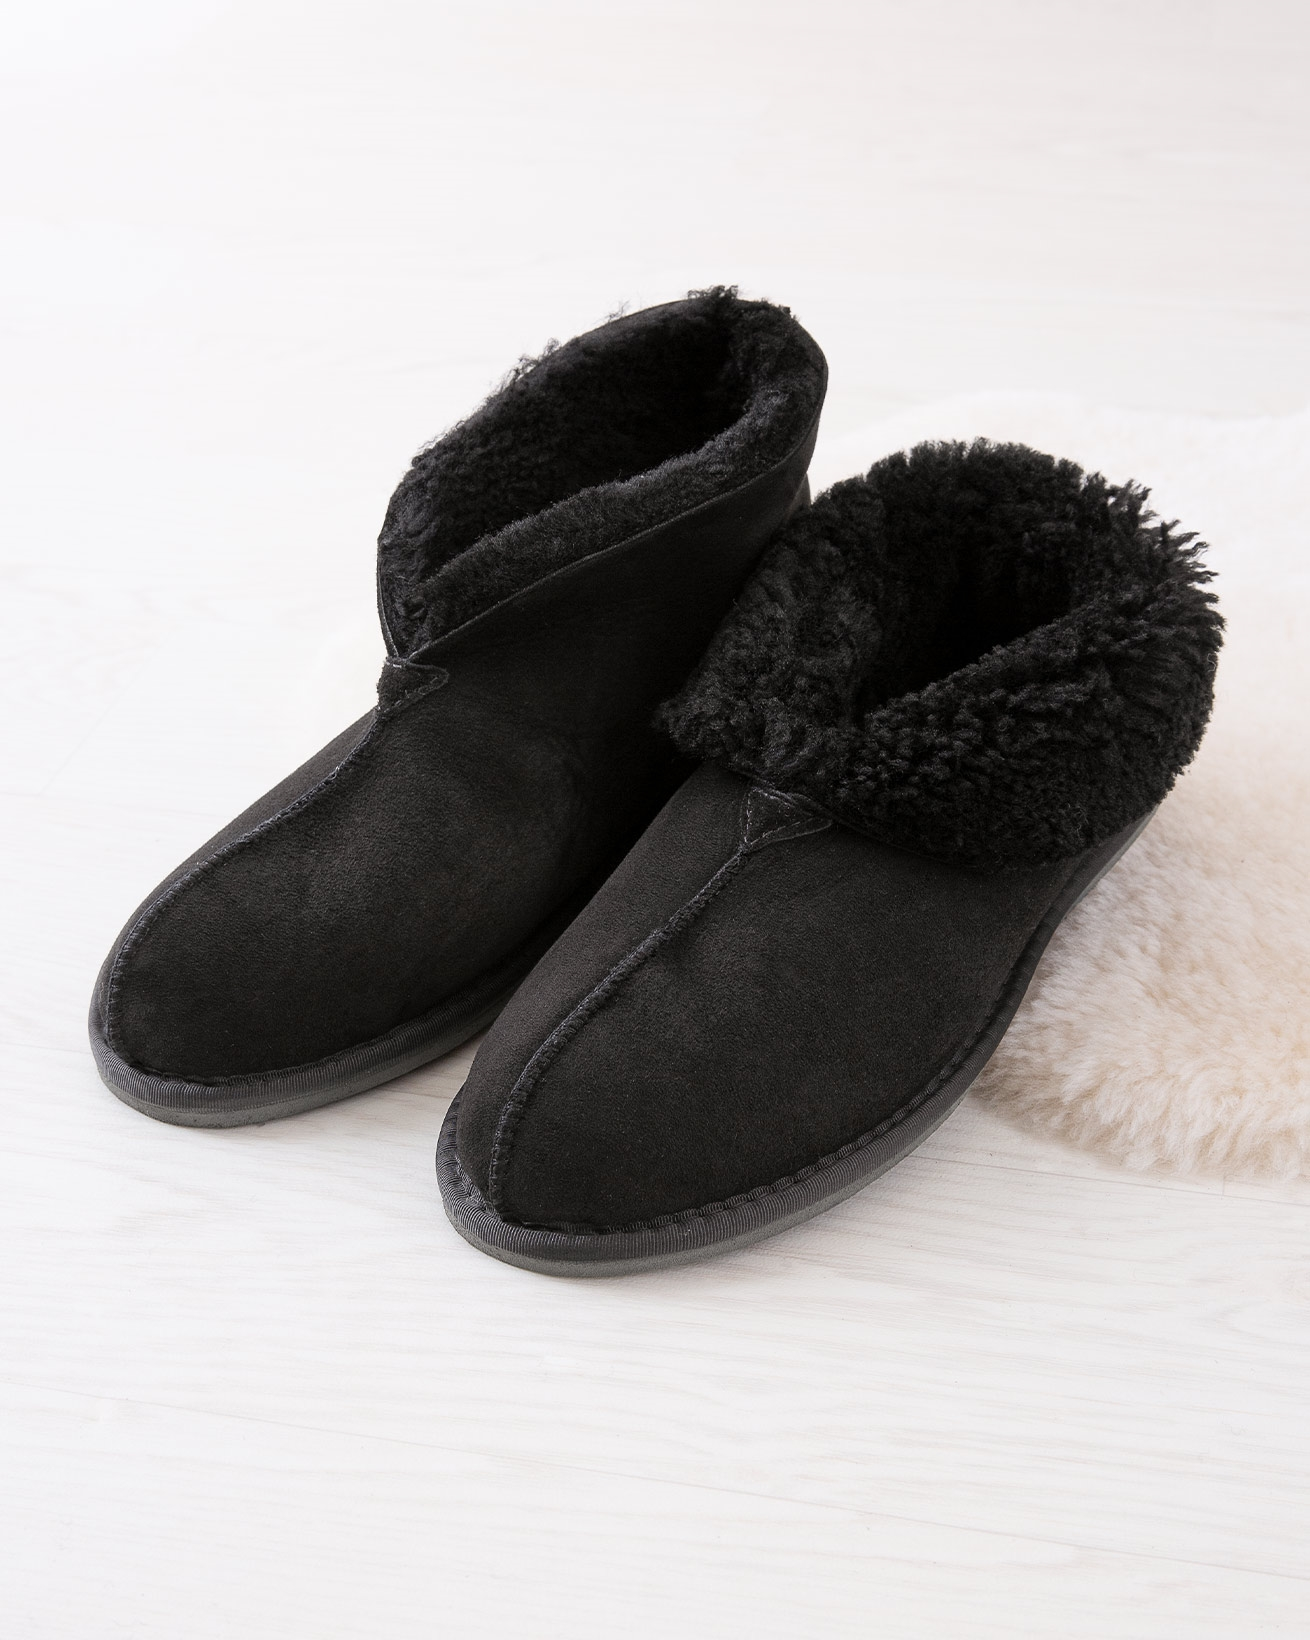 6618_mens-sheepskin-bootee-slippers_black_lifestyle_lfs.jpg